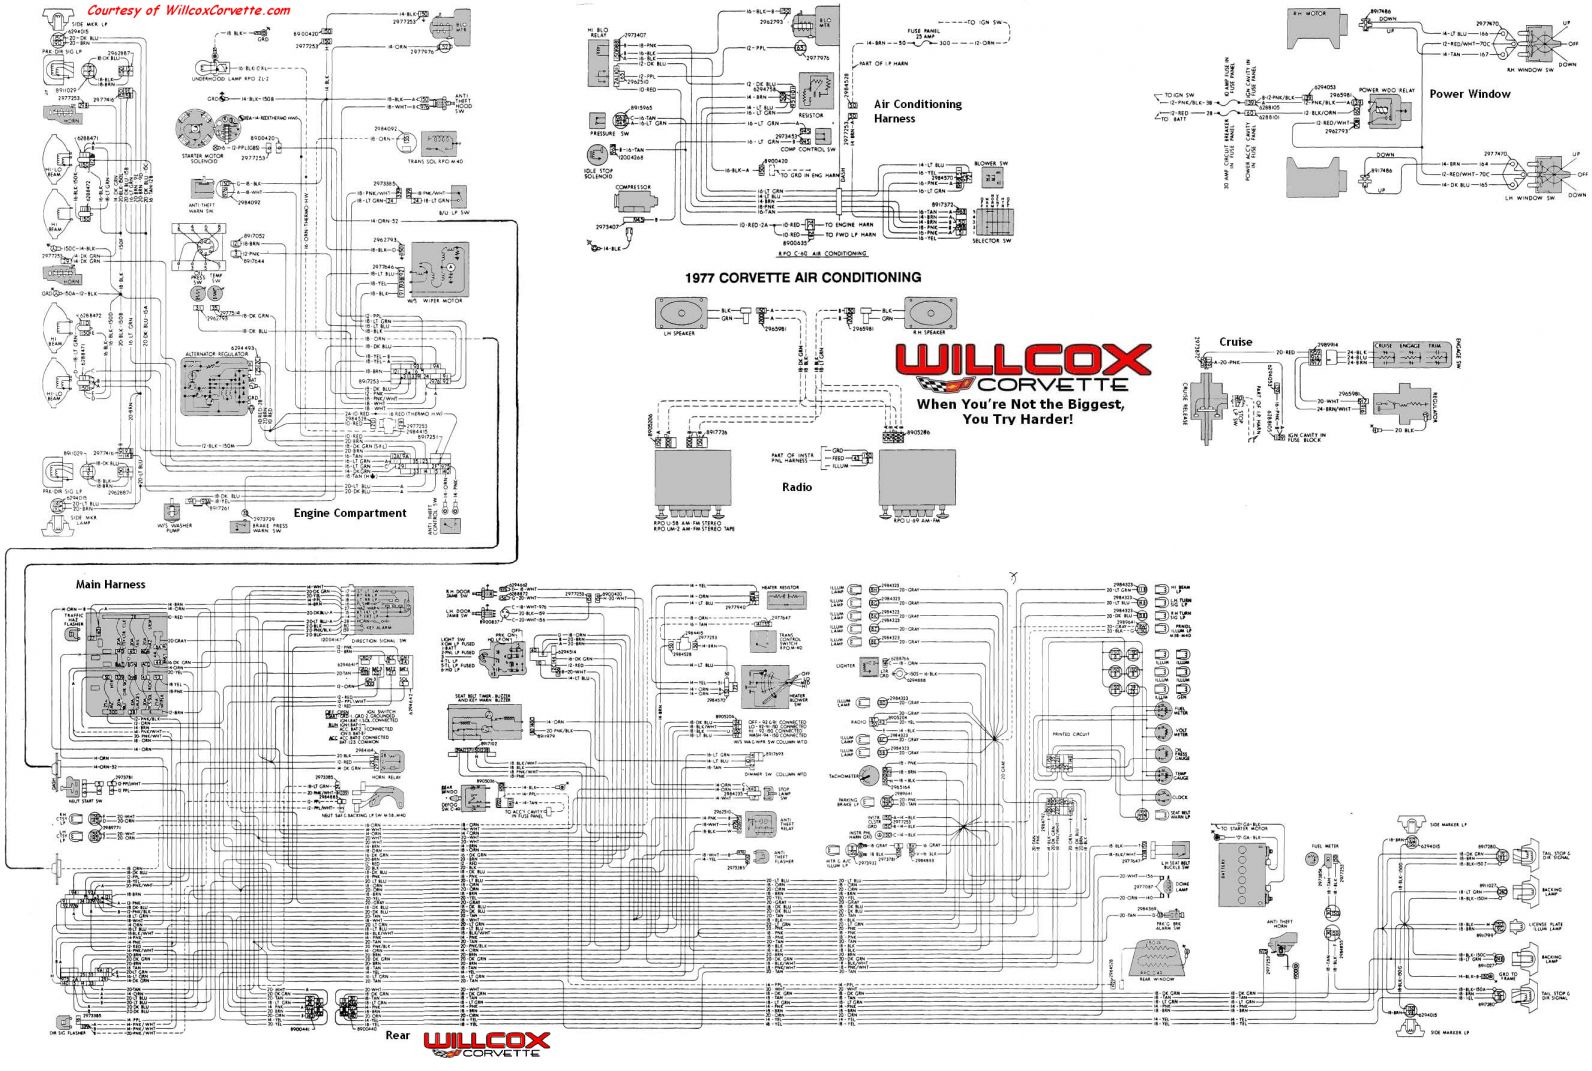 17+ 1977 Corvette Engine Wiring Diagram - Engine Diagram - Wiringg.net in  2020 | Corvette, 1977 corvette, Corvette enginePinterest